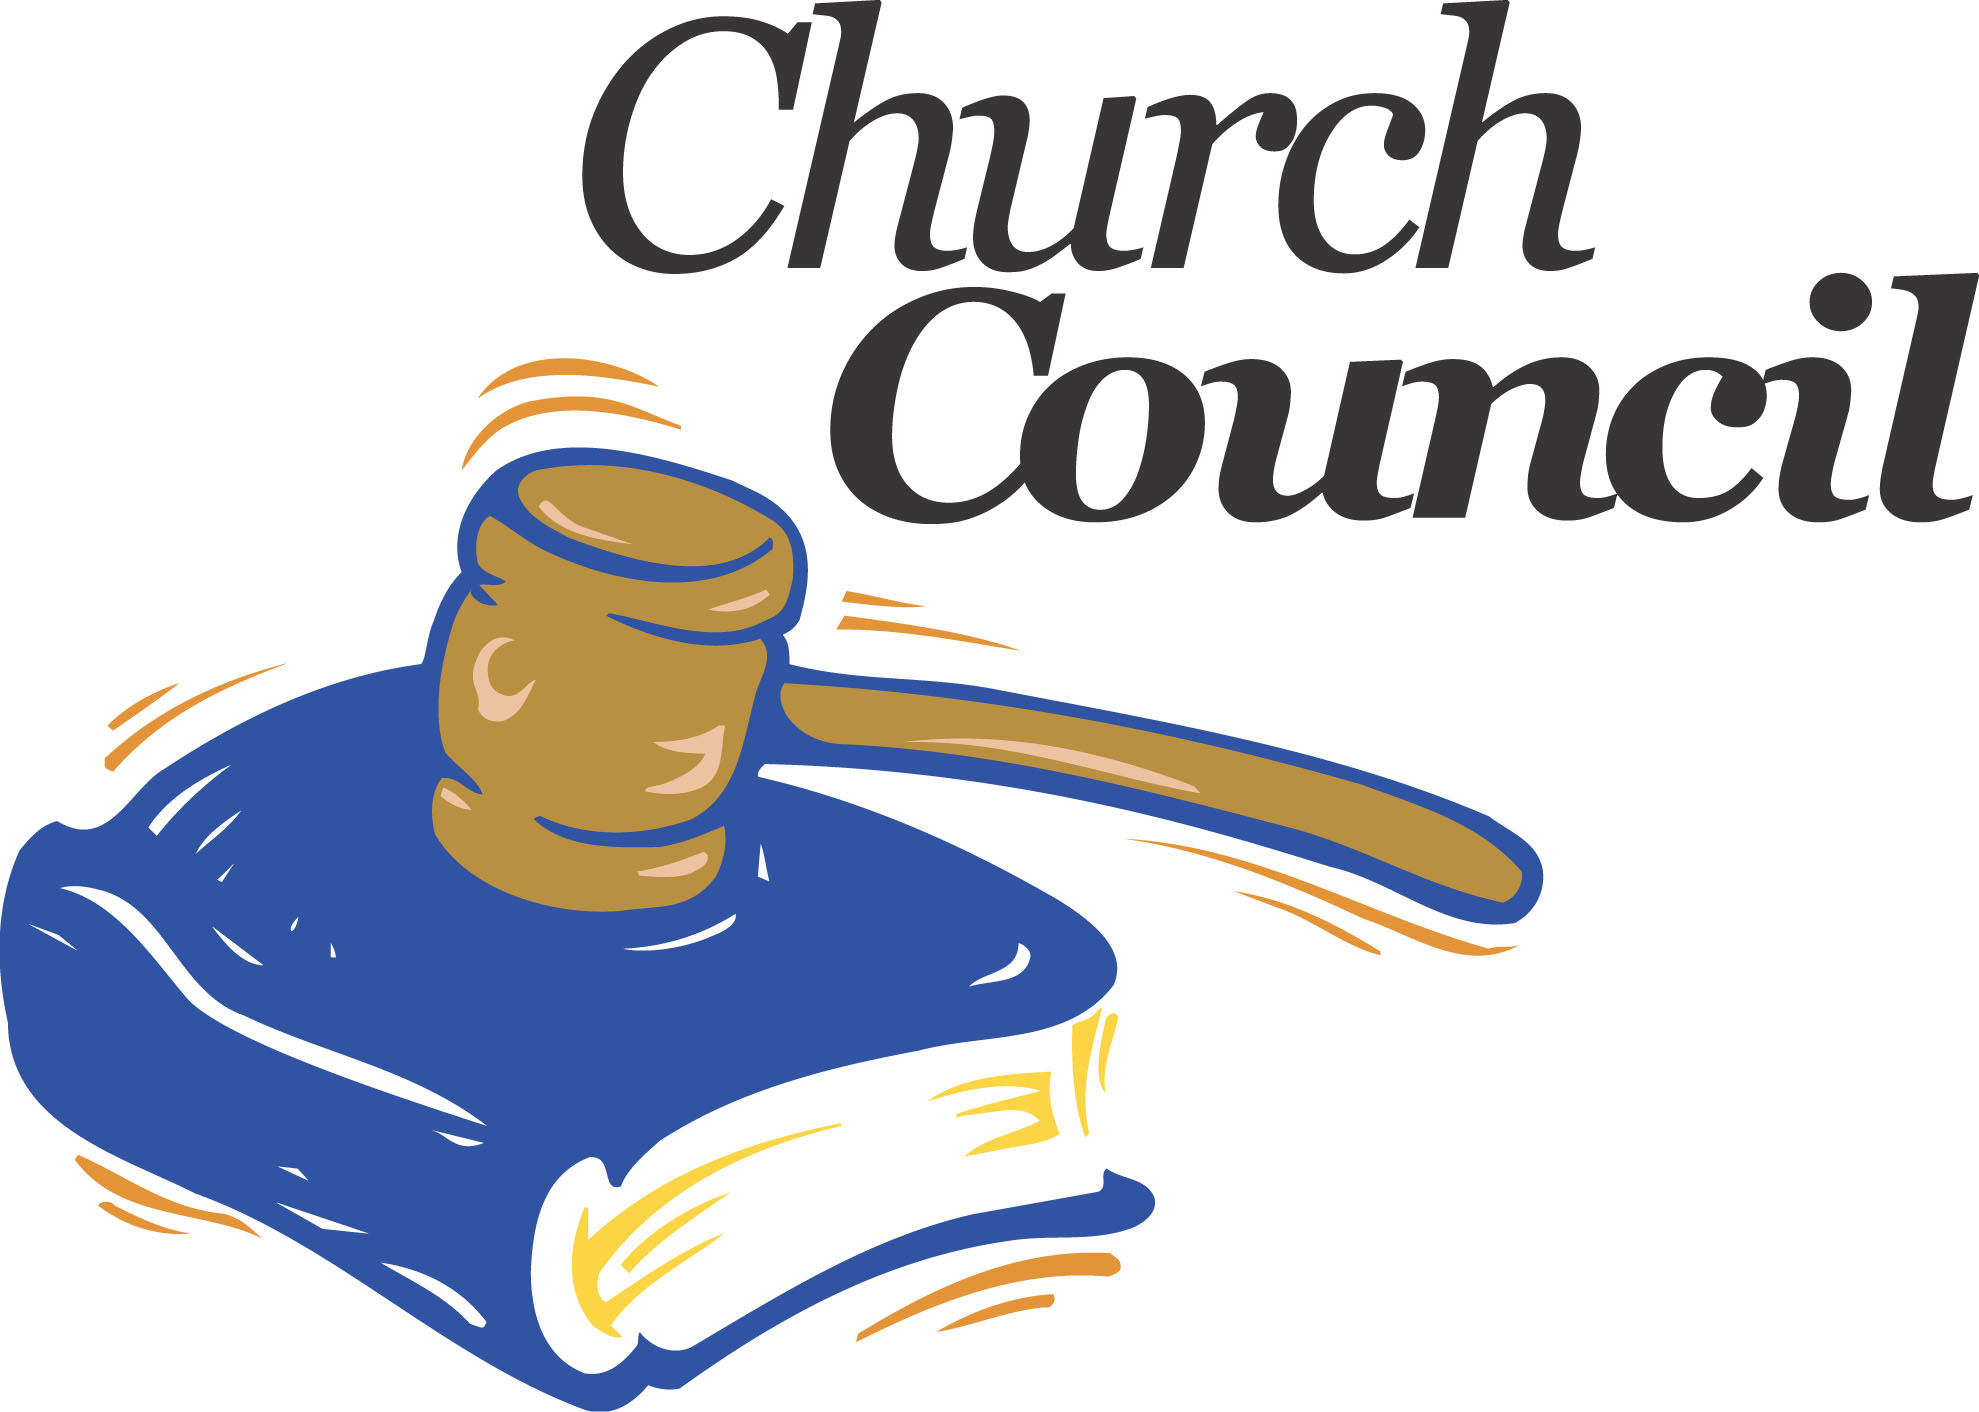 Meeting clipart resident Meeting Church Council Council Clipart